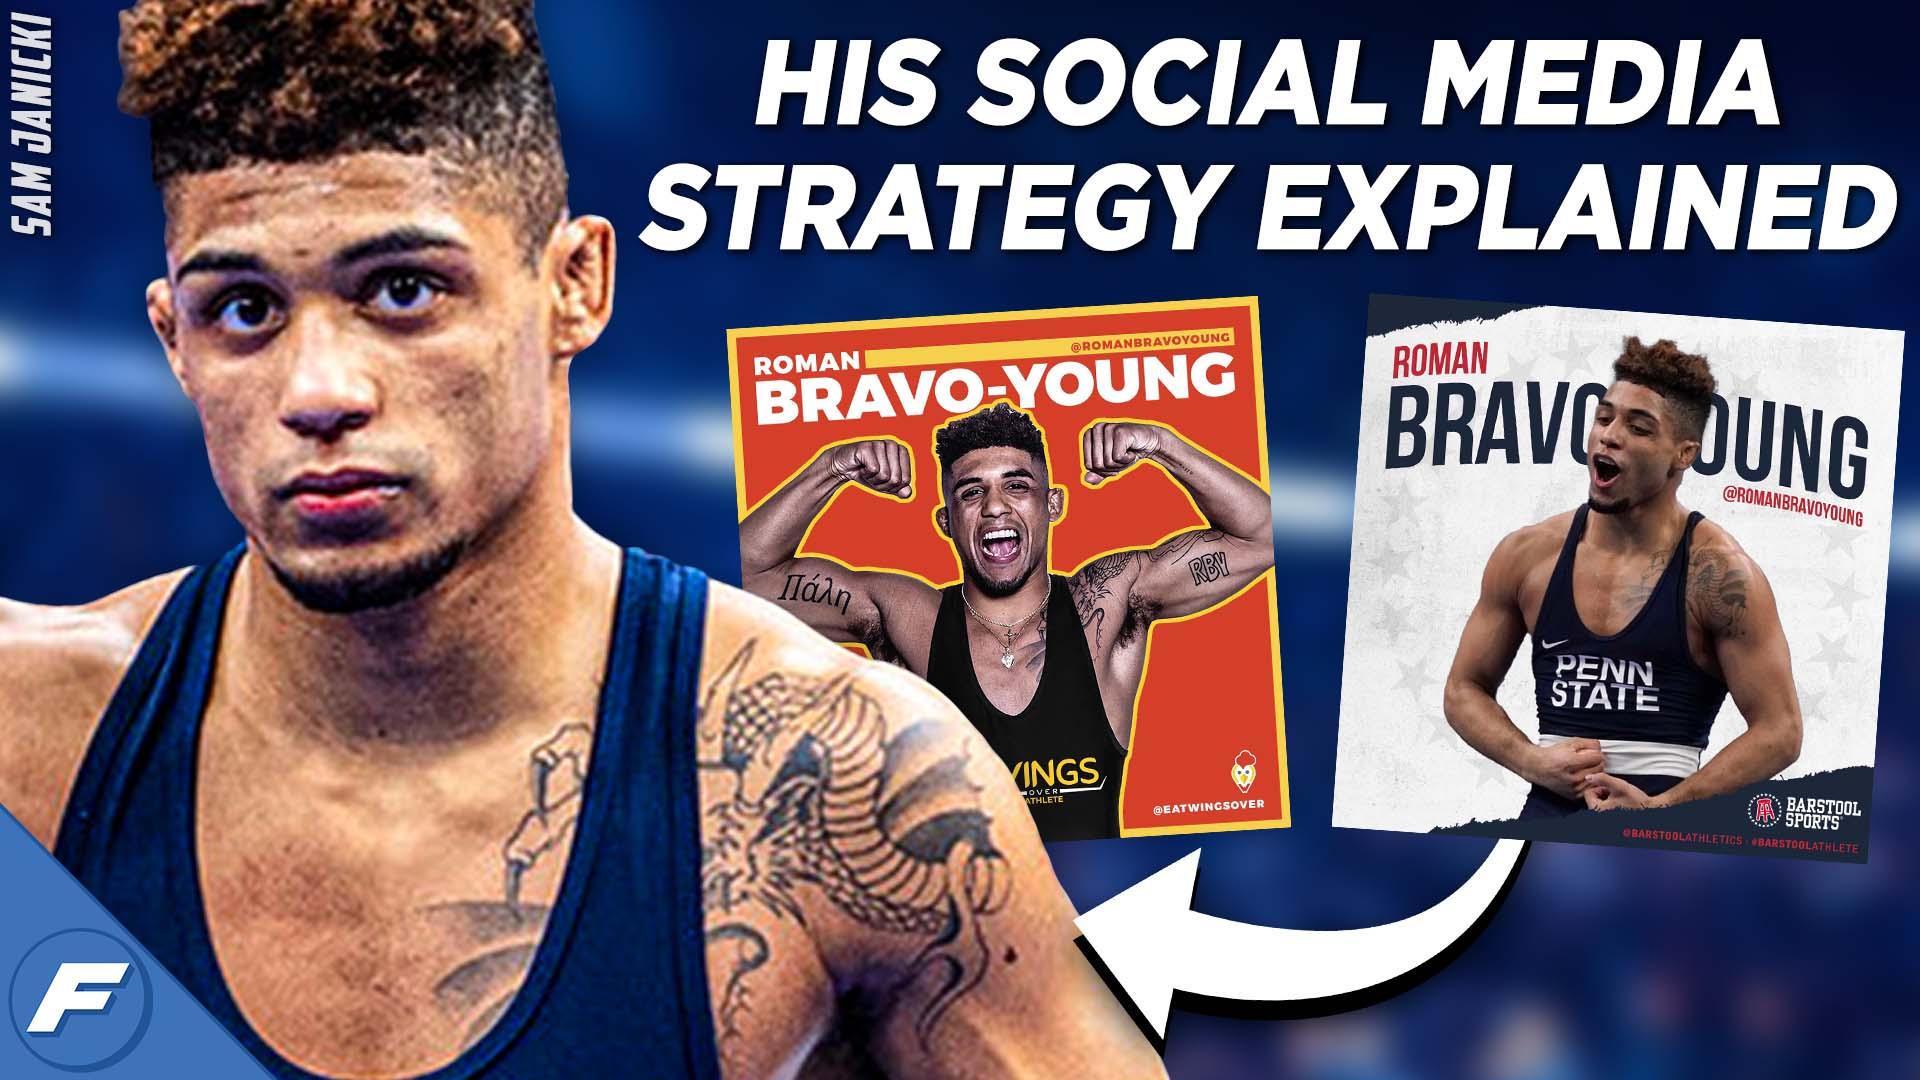 You are currently viewing Dissecting the RBY Brand – How Roman Bravo-Young Leveraged Social Media